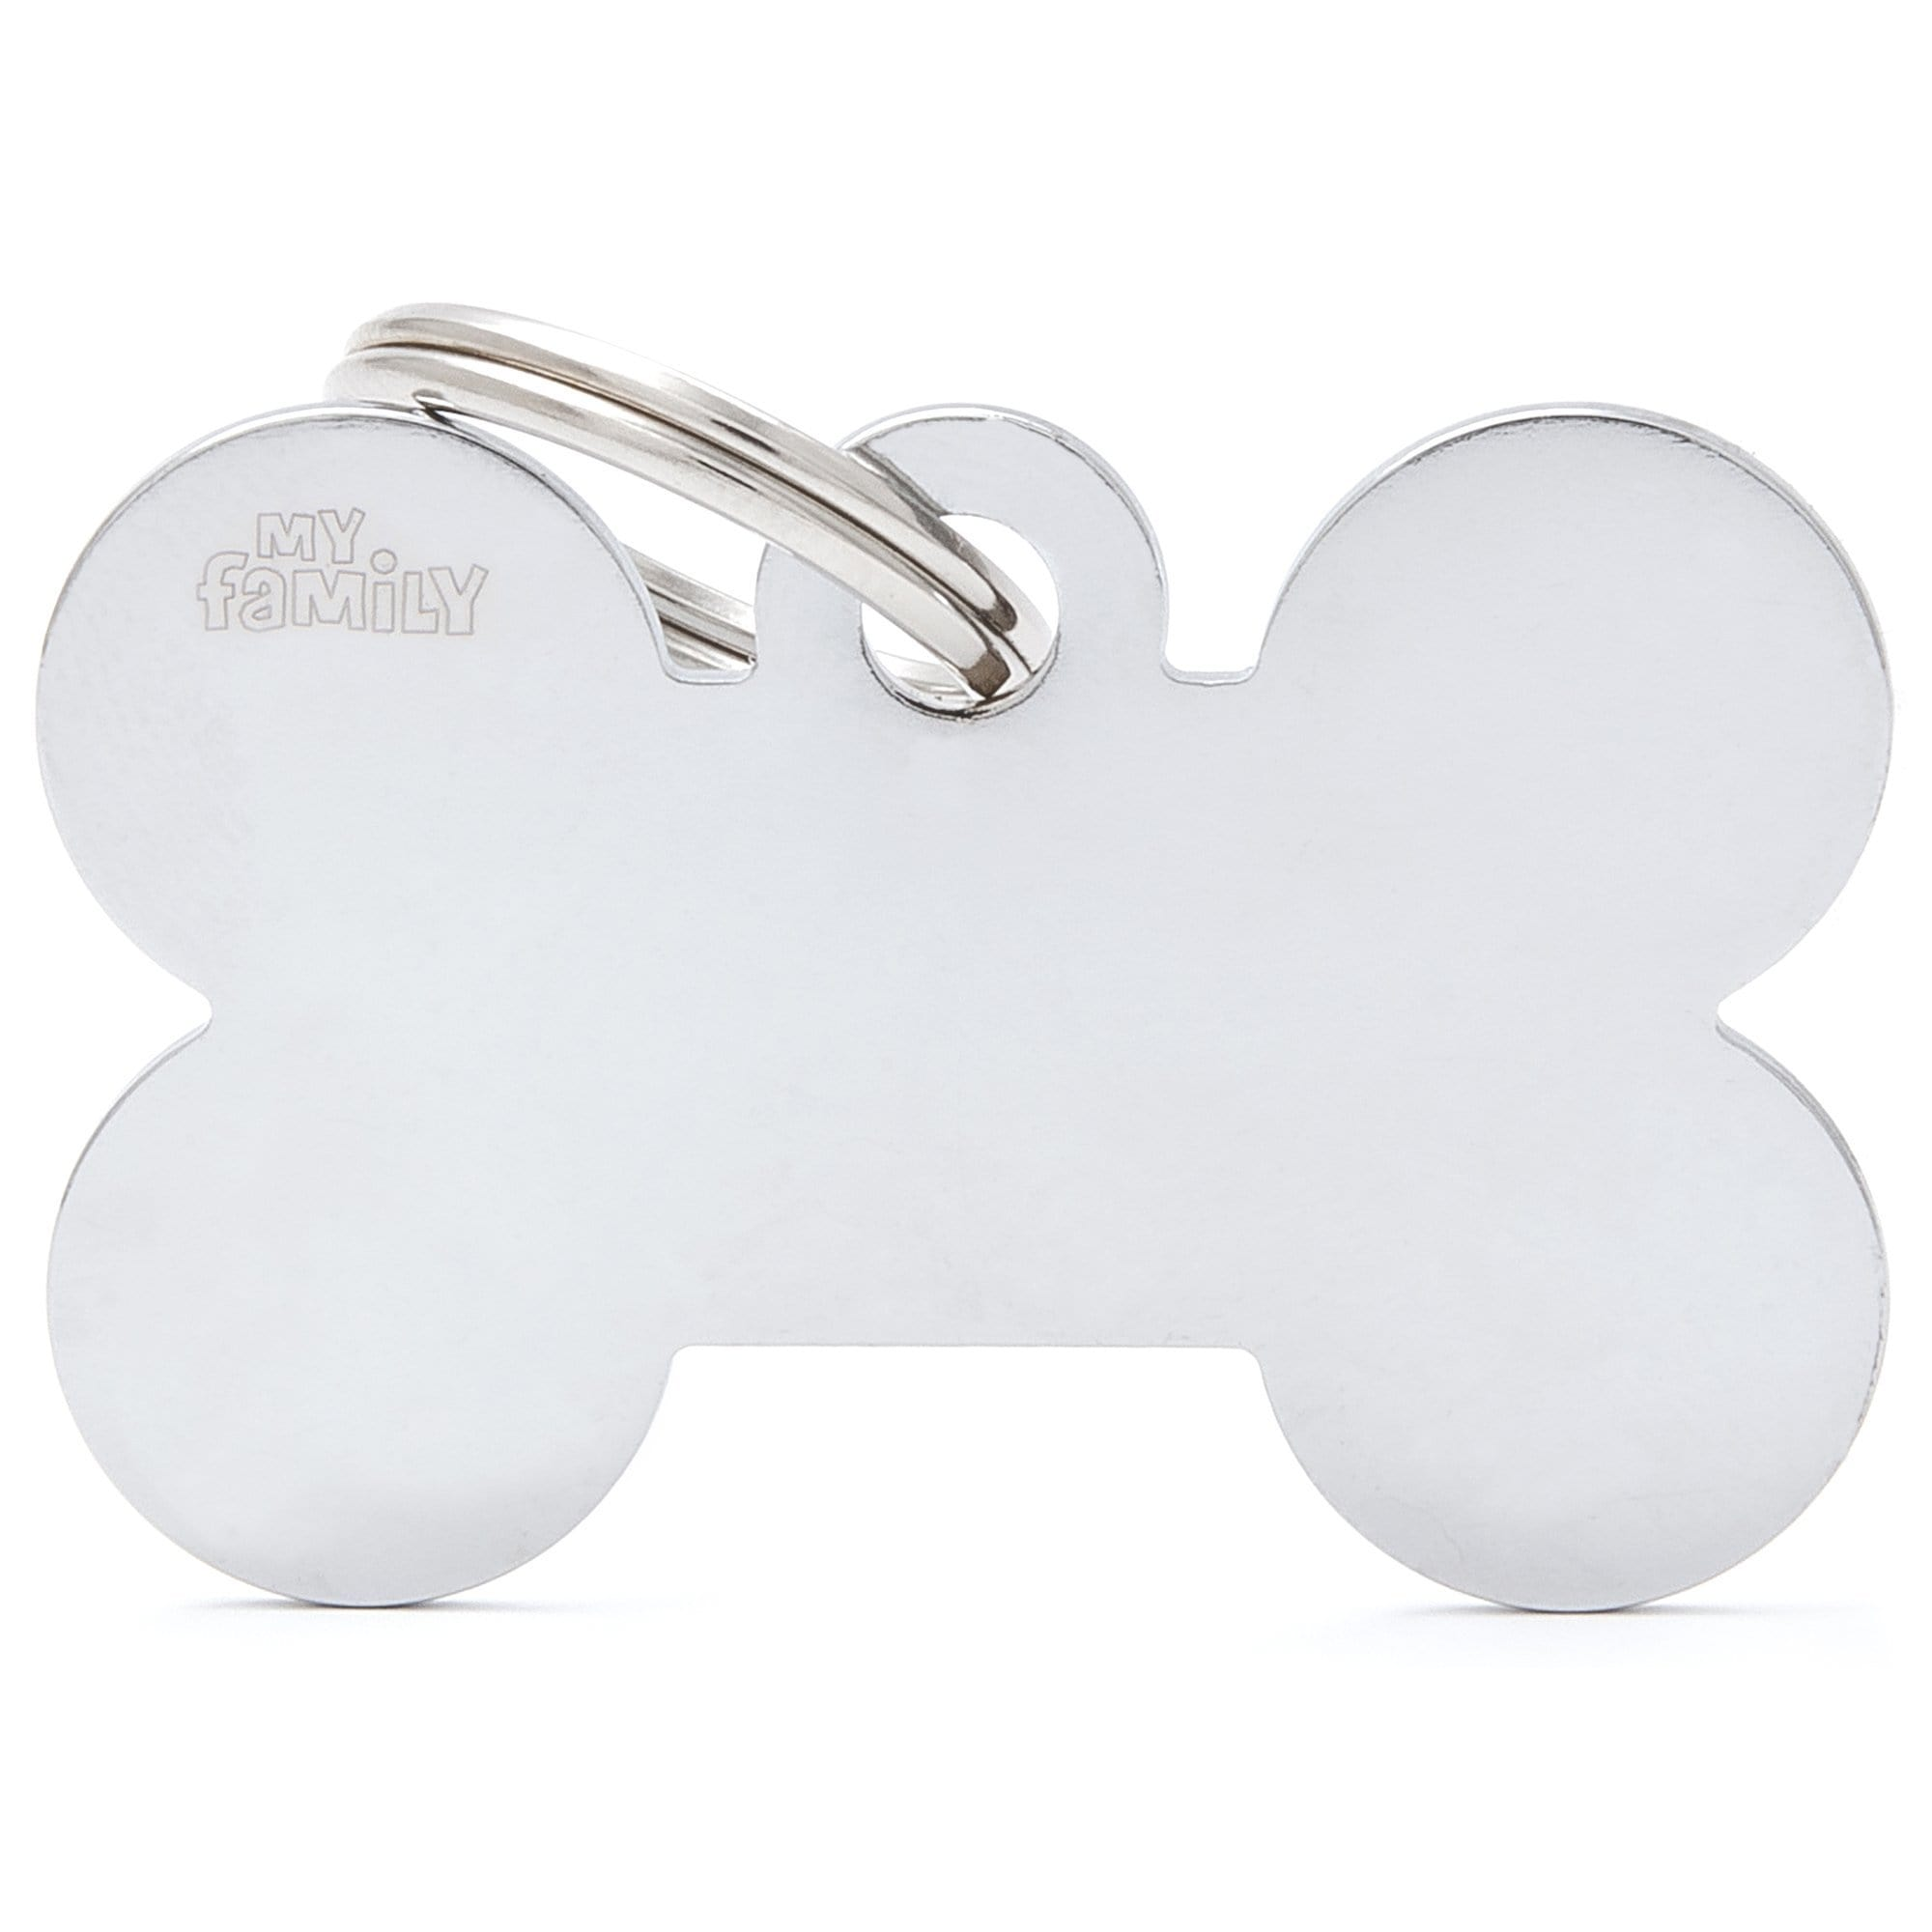 My Family XL Bone Chrome Dog I.D. Tags 4F4B